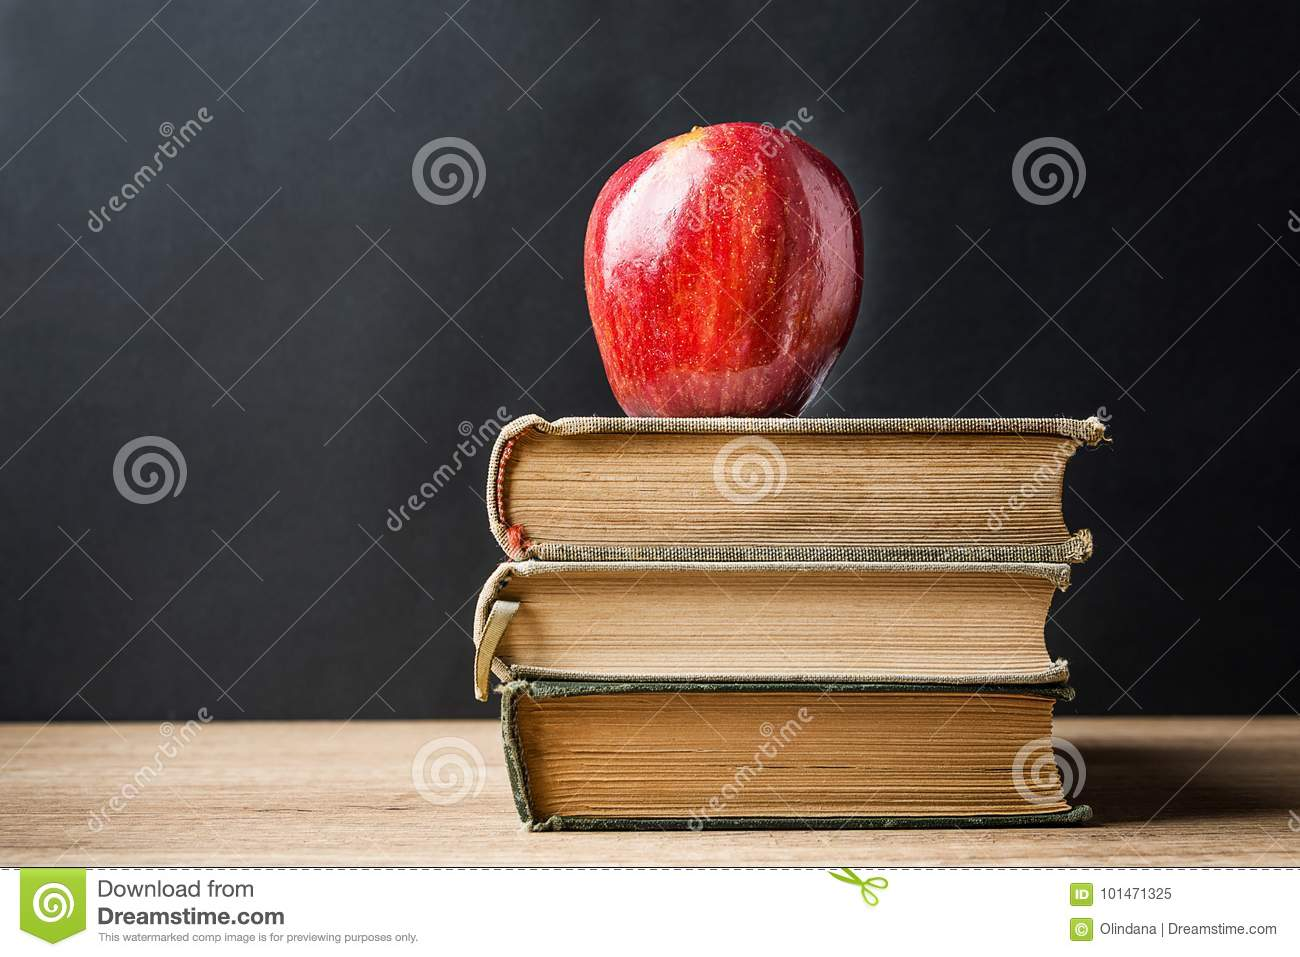 Stack Pile of Old Books Red Glossy Apple on Top. Learning Education Knowledge Concept. Blackboard Background. Classrom.